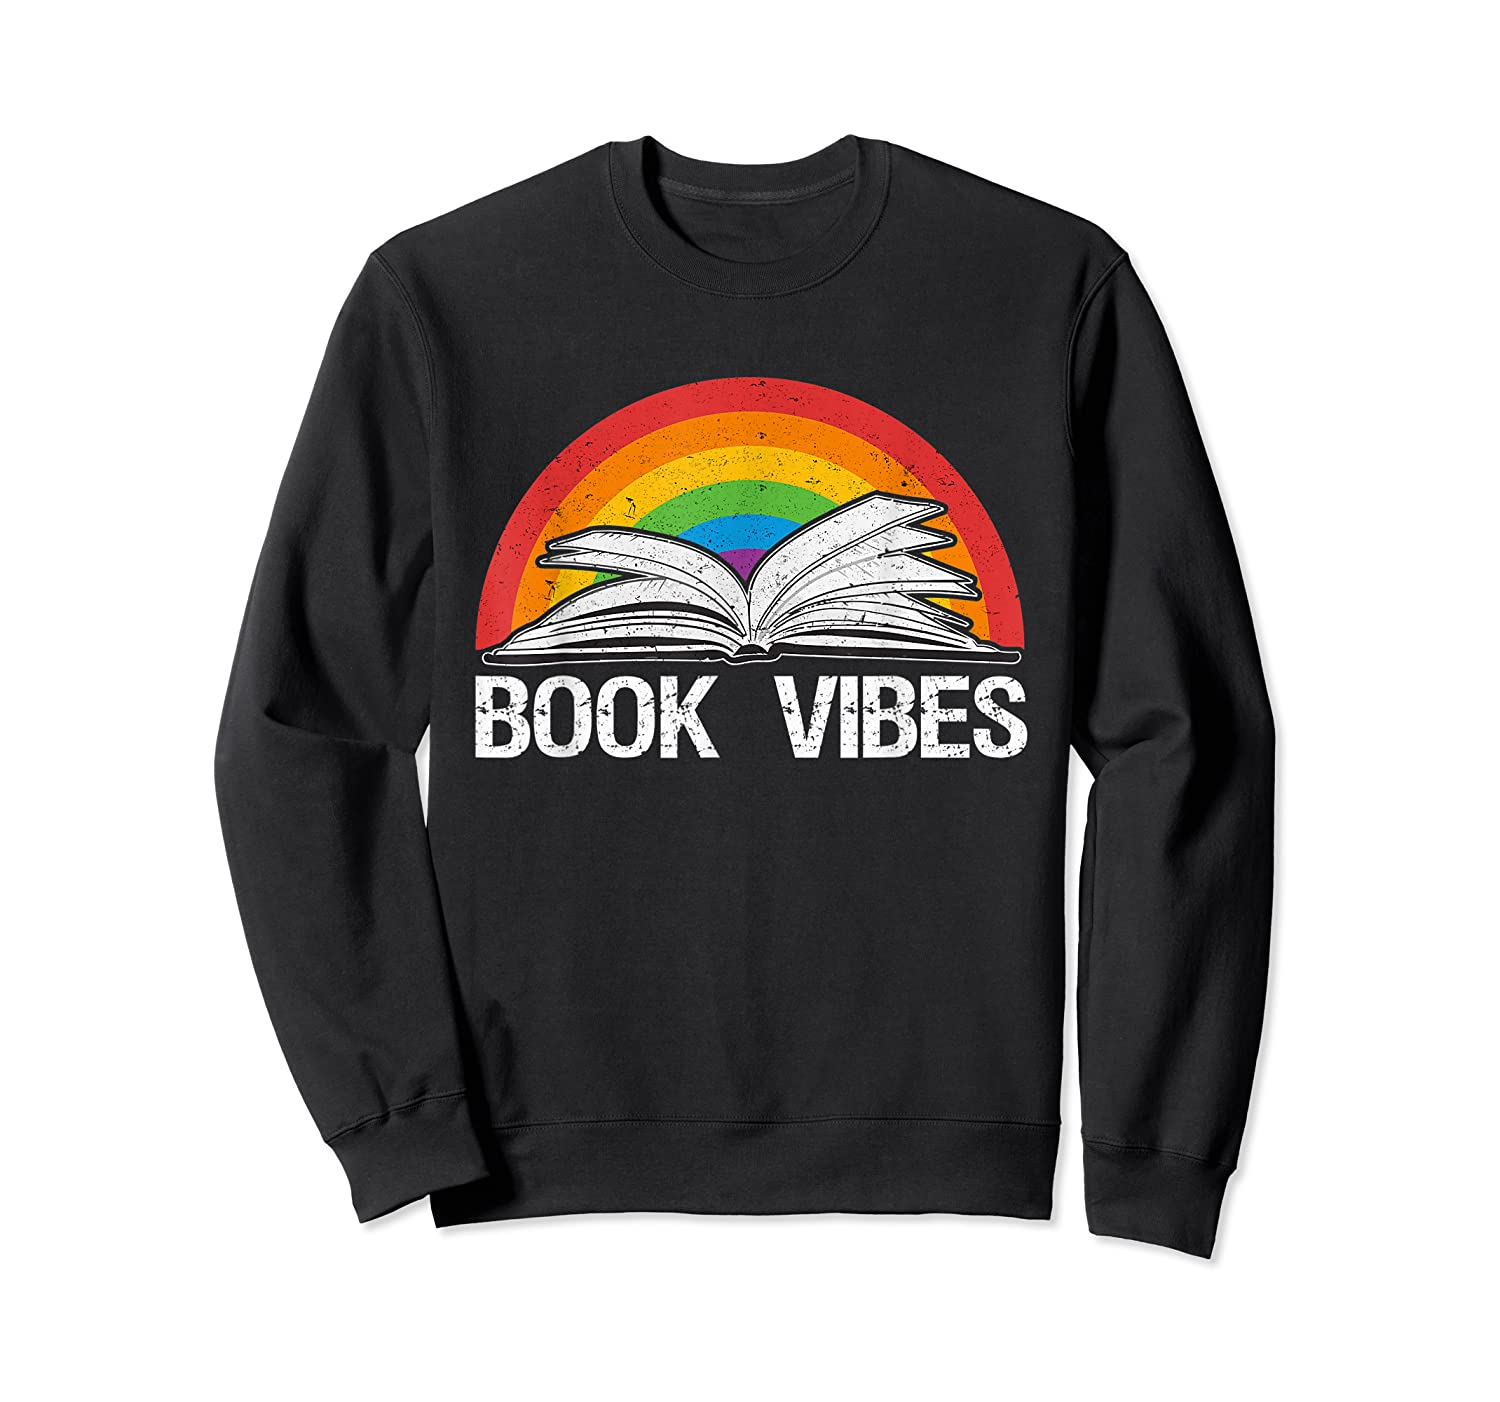 Vintage Retro Book Vibes Rainbow Gift For Reading Lovers T Shirt Crewneck Sweater